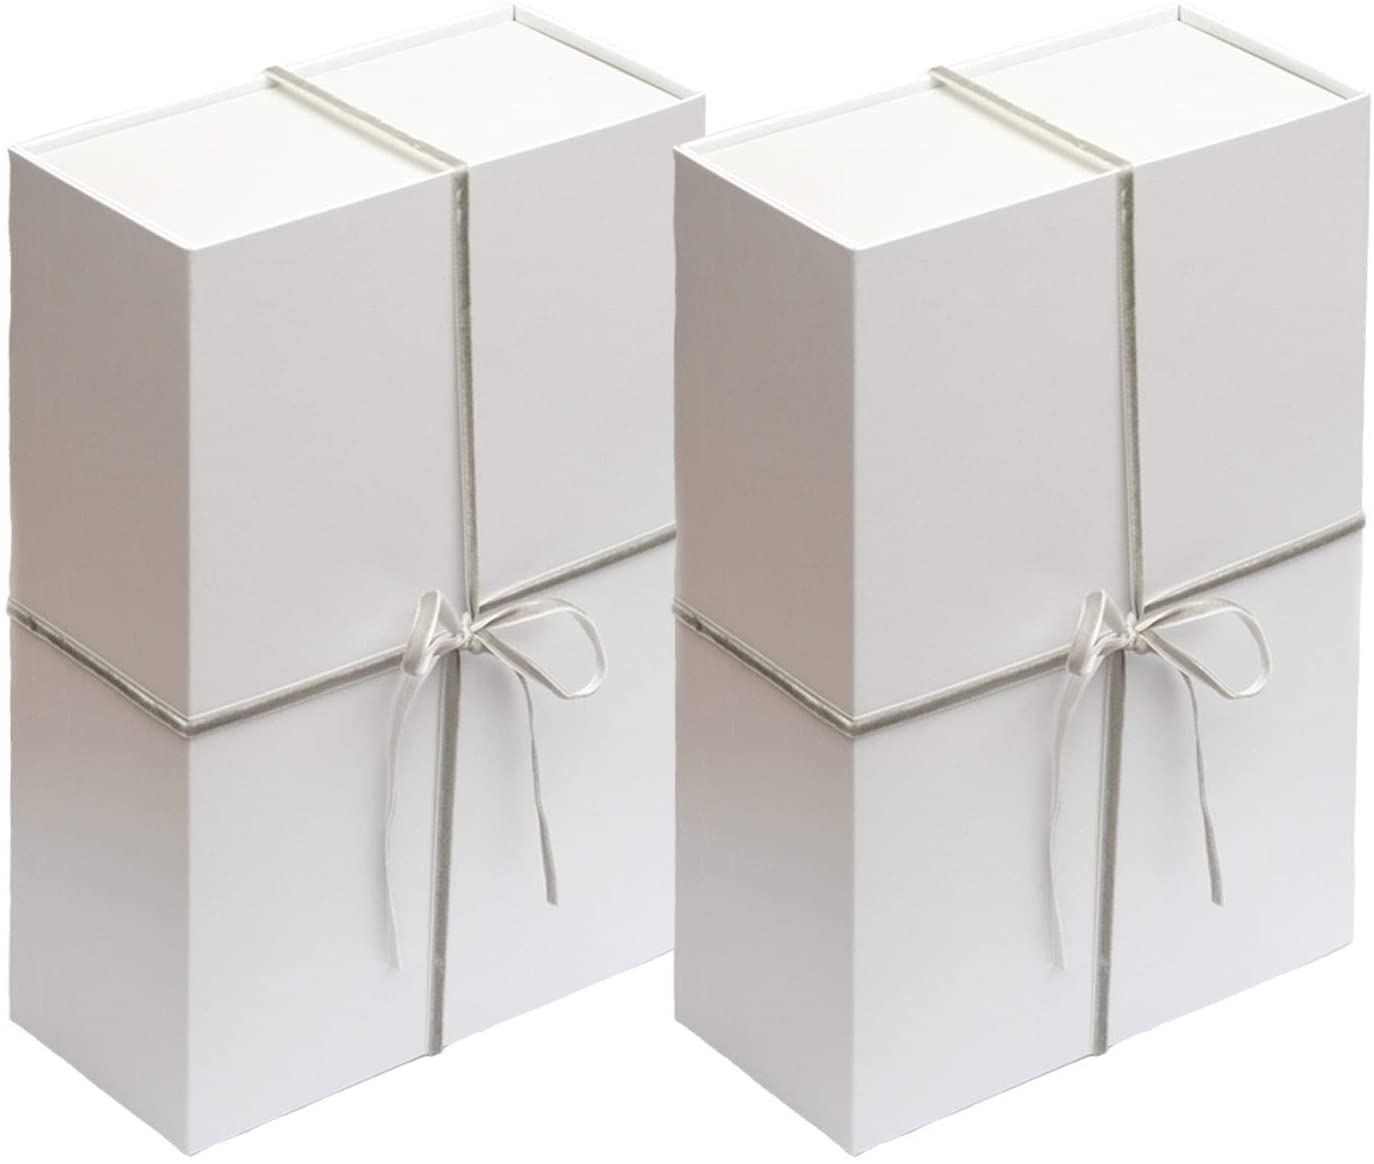 Your Gatherings - 2 Pack Gift Boxes with Magnetic Closure - Collapsible Box Set Include Tissue Paper and Velvet Ribbons, Box Folds Flat for Birthday, Wedding, Baby Shower Gifts (12x8x4, White/Grey)